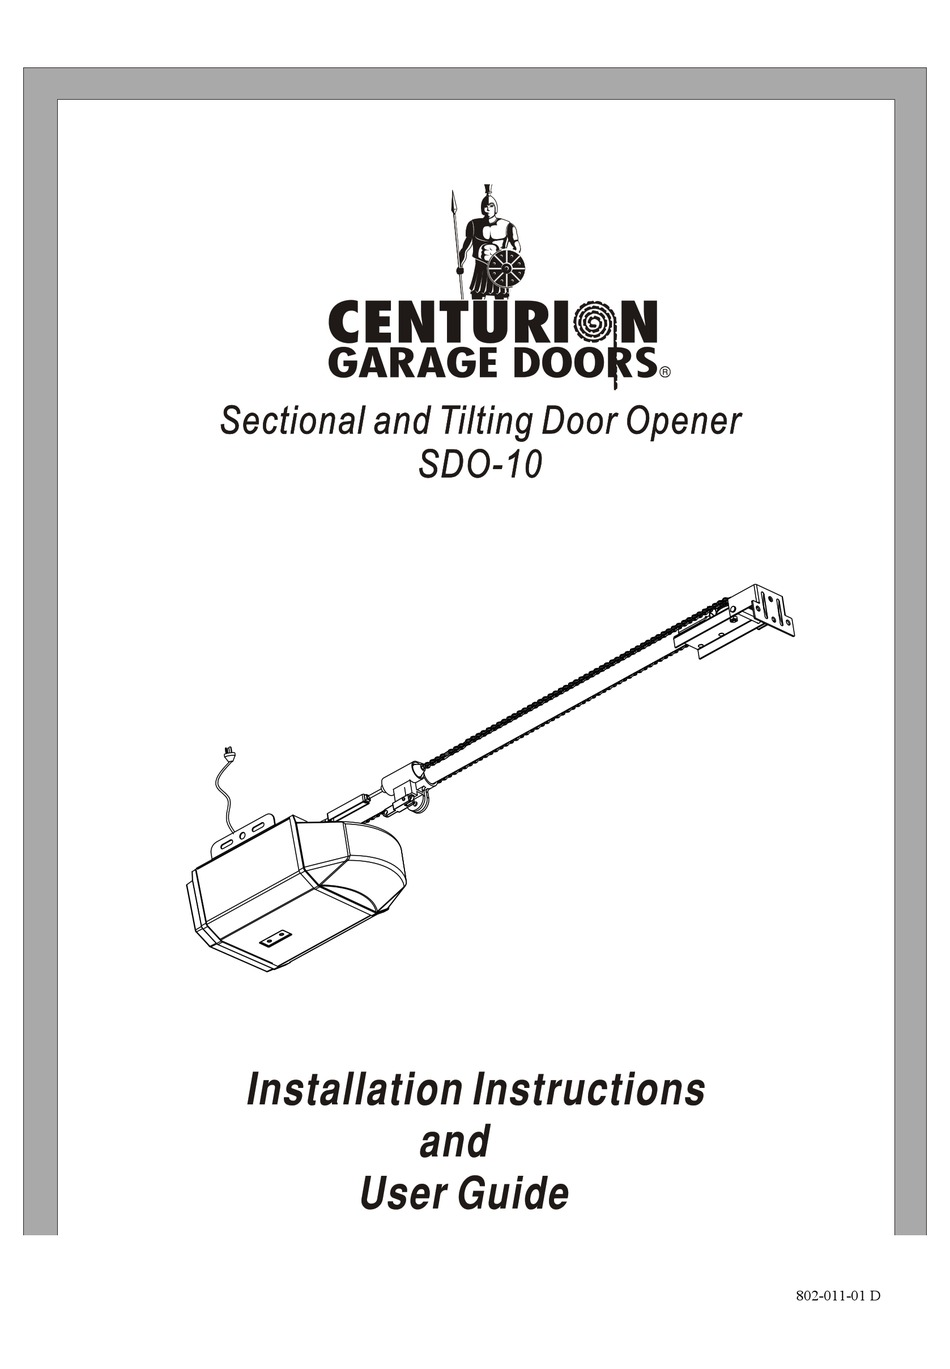 CENTURION SDO-10 INSTALLATION INSTRUCTIONS AND USER MANUAL